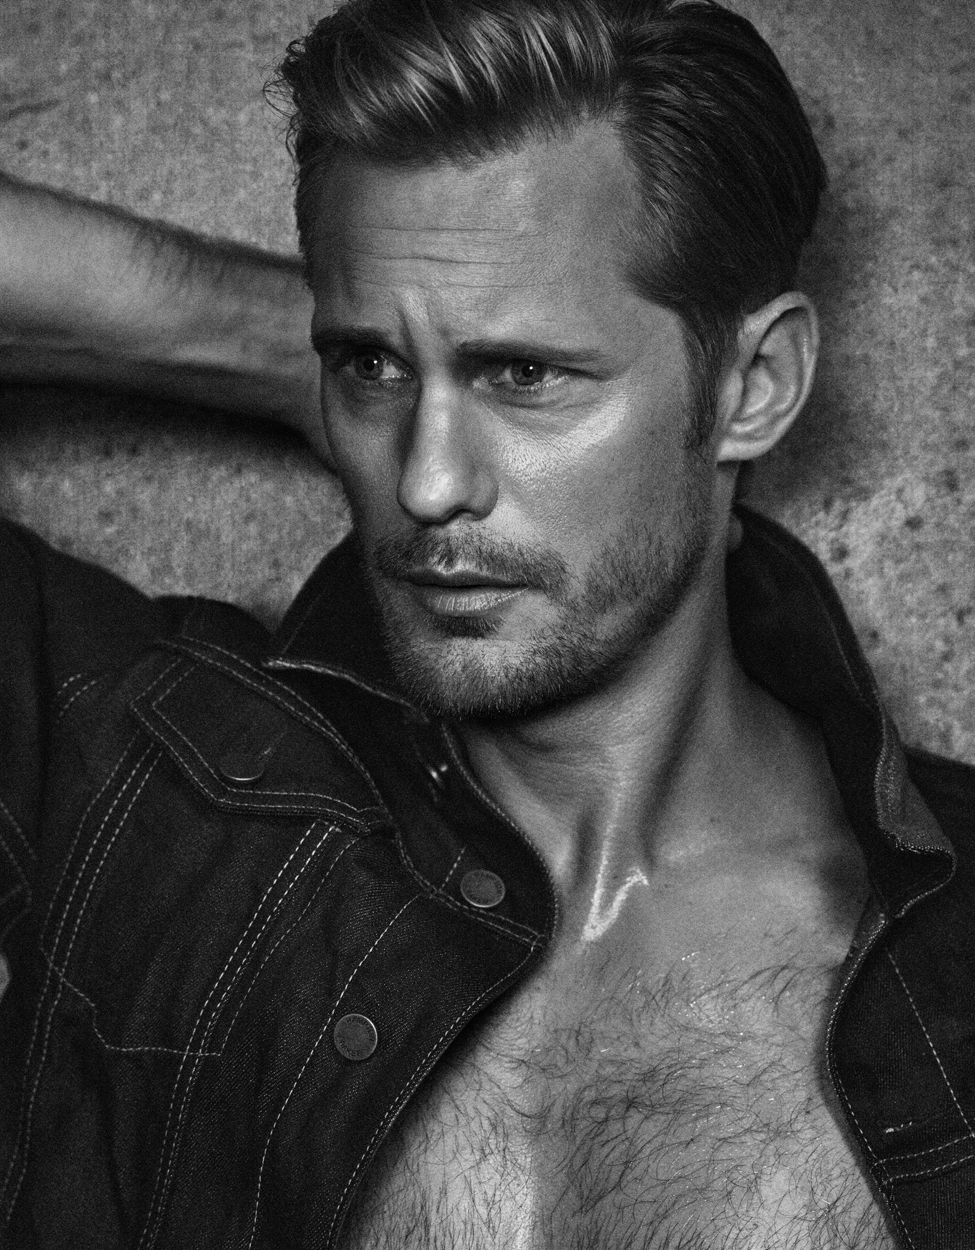 Celebrity Photographer Michael Schwartz: Alexander Skarsgard for Vanity Fair Italy magazine